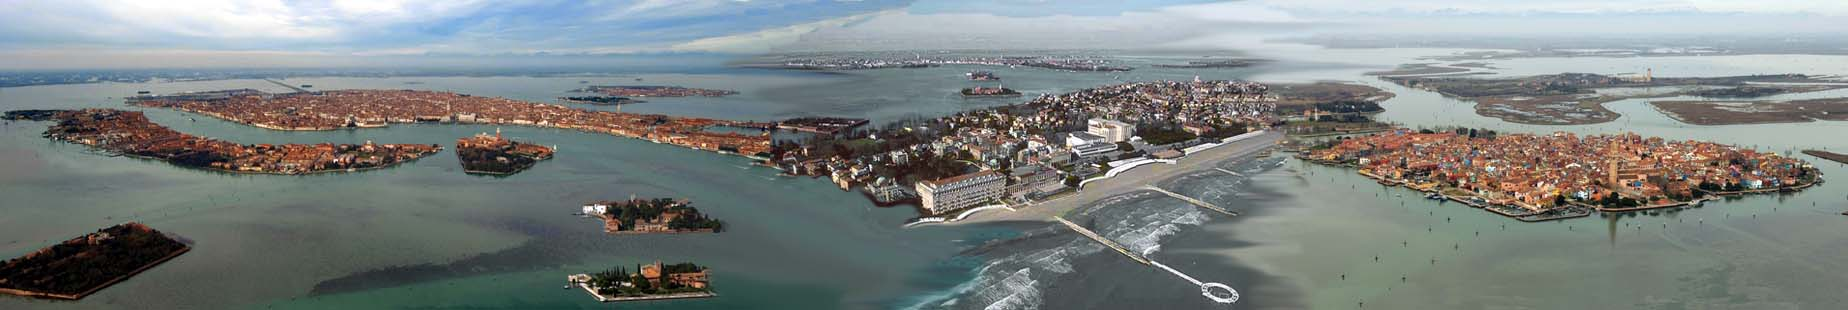 Venice sight from helicopter Heliair